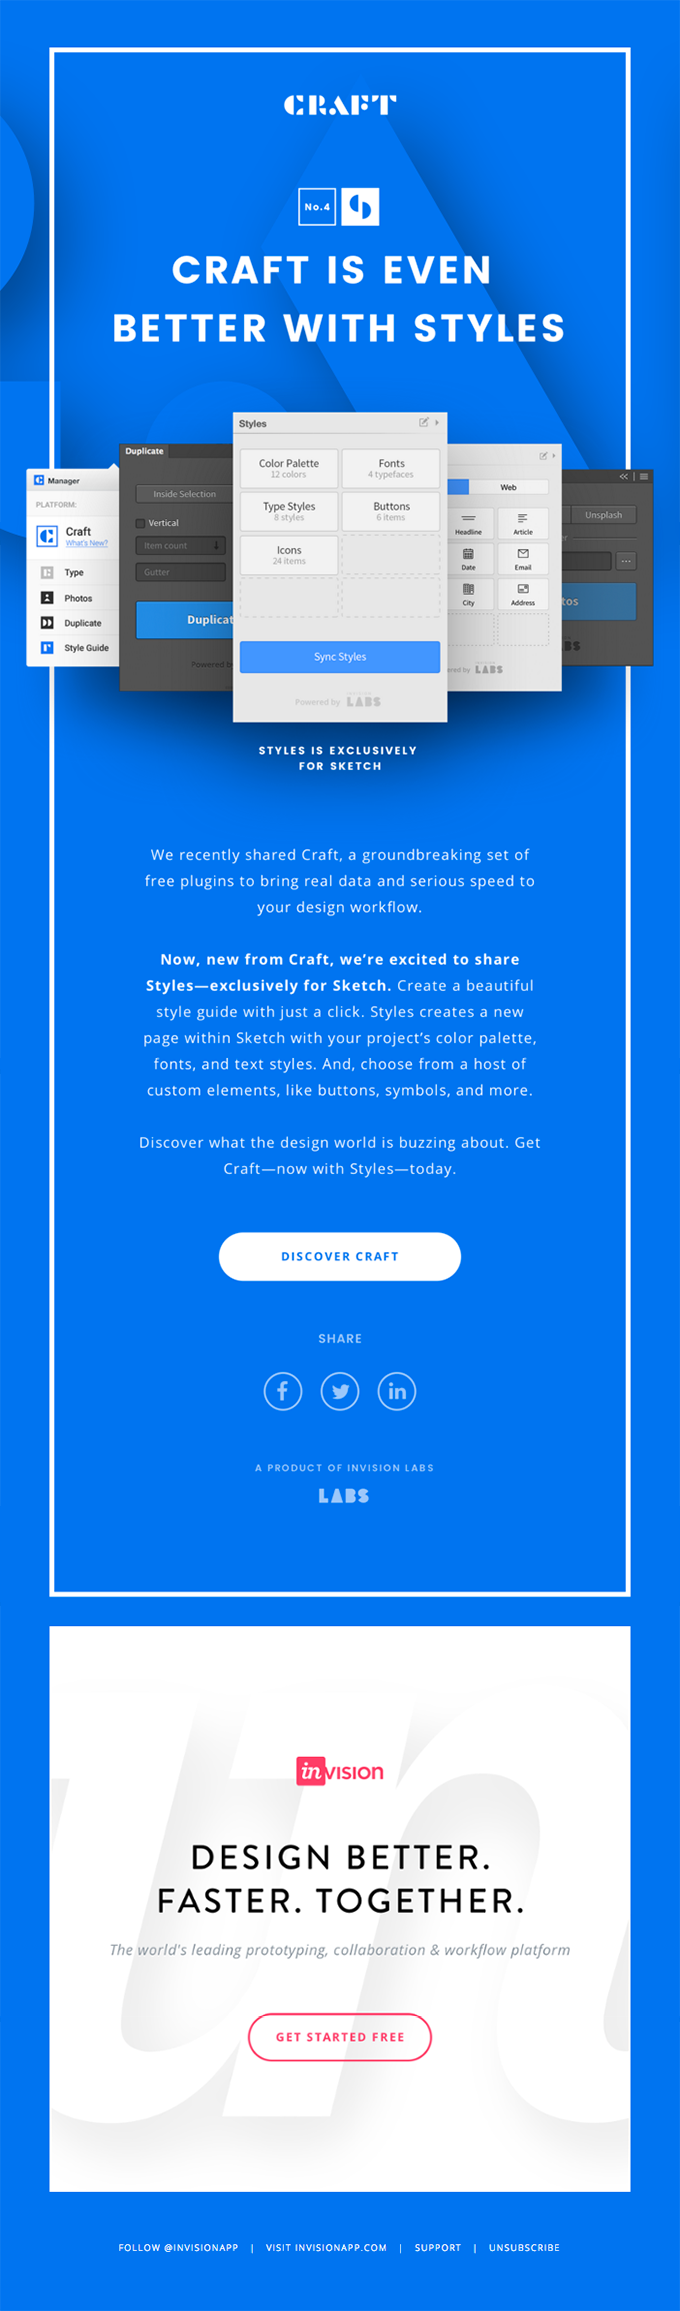 13 of the best examples of beautiful email design